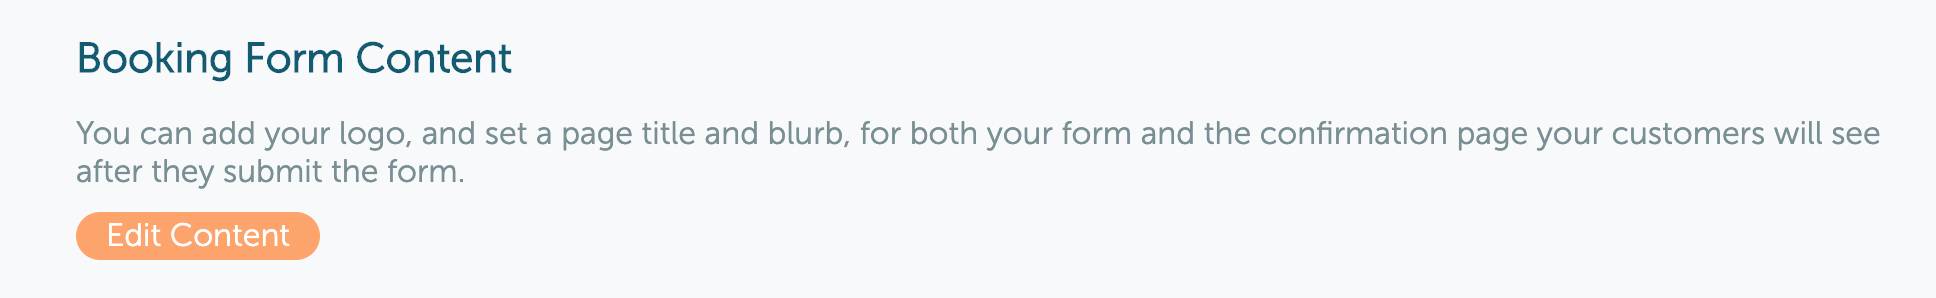 Booking Form Content